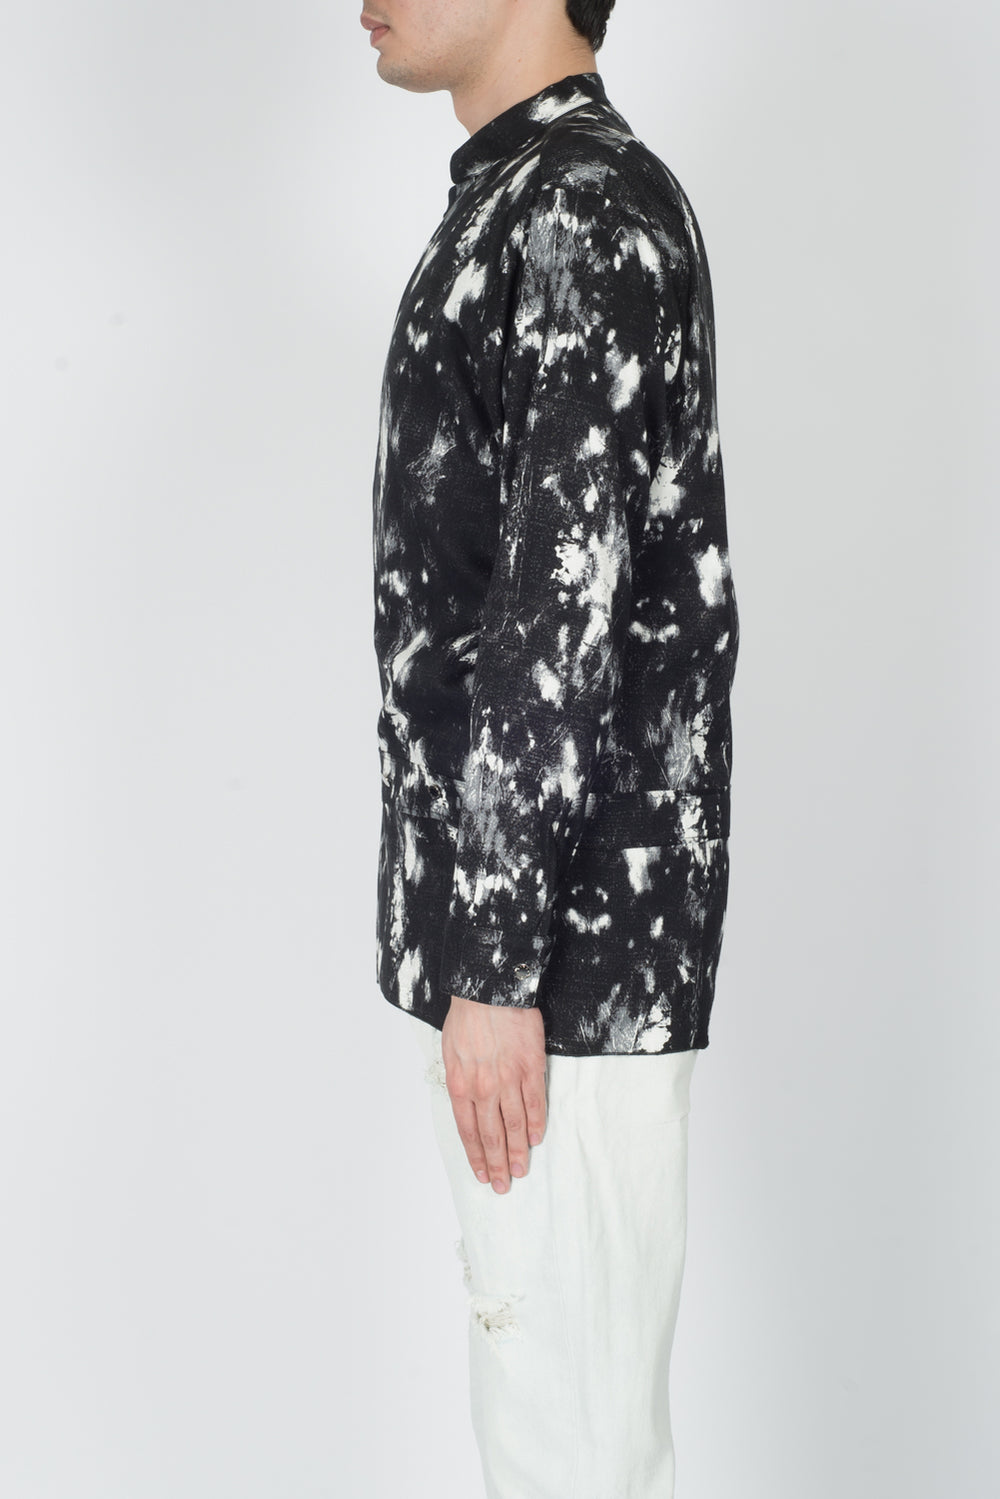 Alyx Wrap L/S Shirt In Black/White